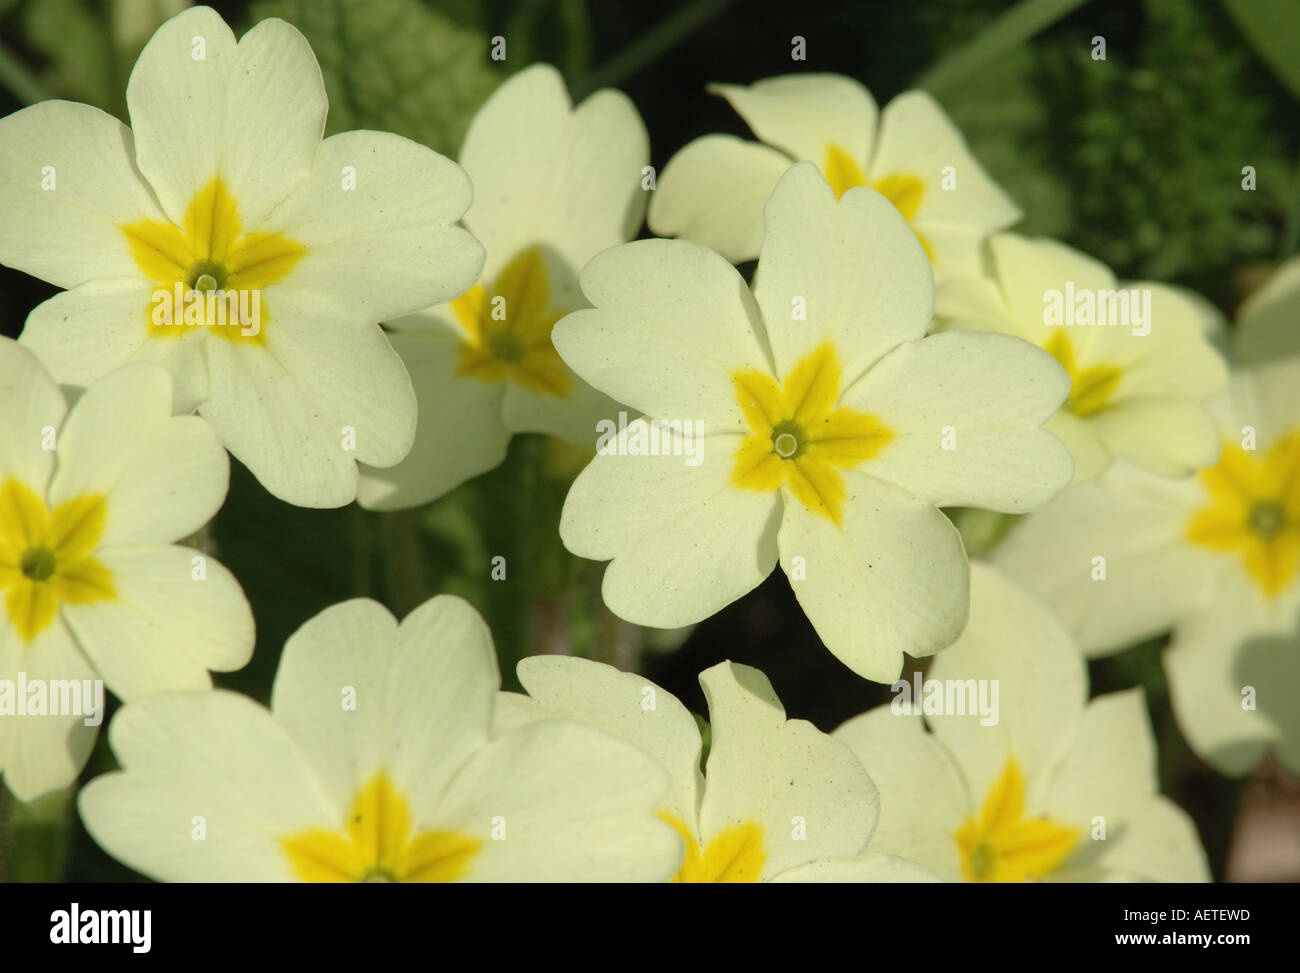 Pale yellow flowers of the primrose stock photo 7858972 alamy pale yellow flowers of the primrose mightylinksfo